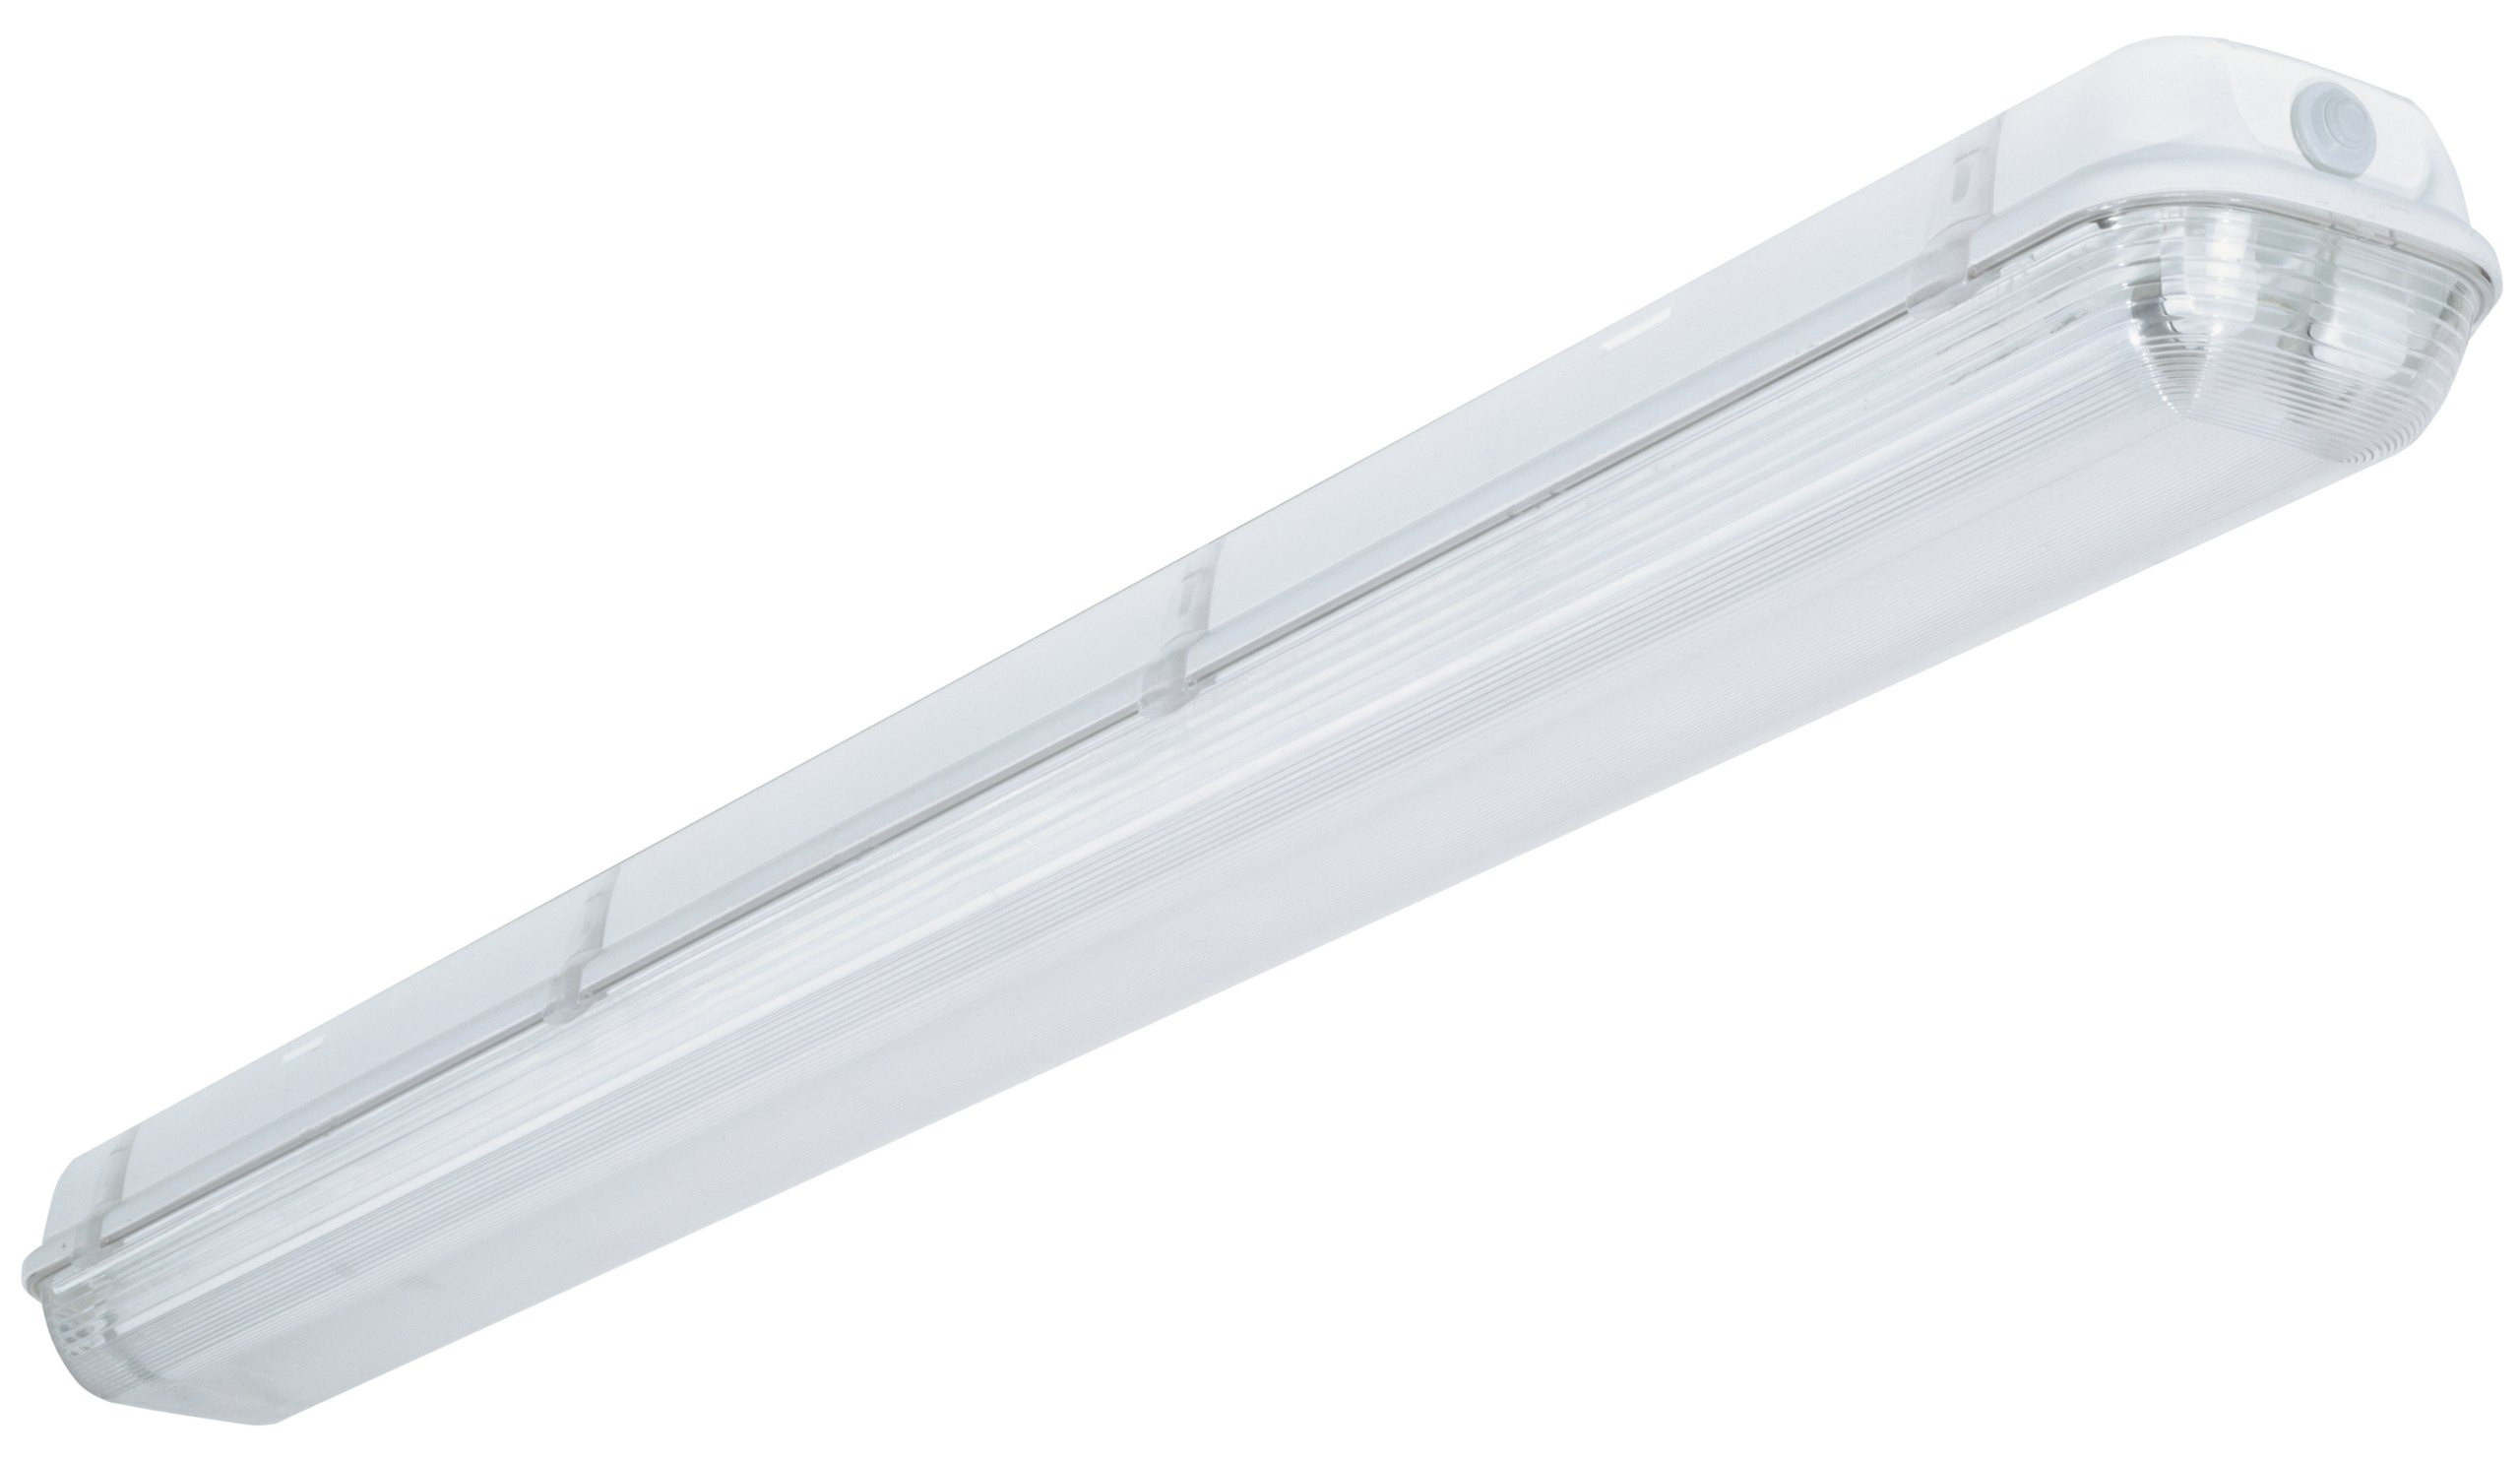 Lithonia Lighting XWL 2 32 120 RE Hanging Outdoor White Industrial Fluorescent Fixture